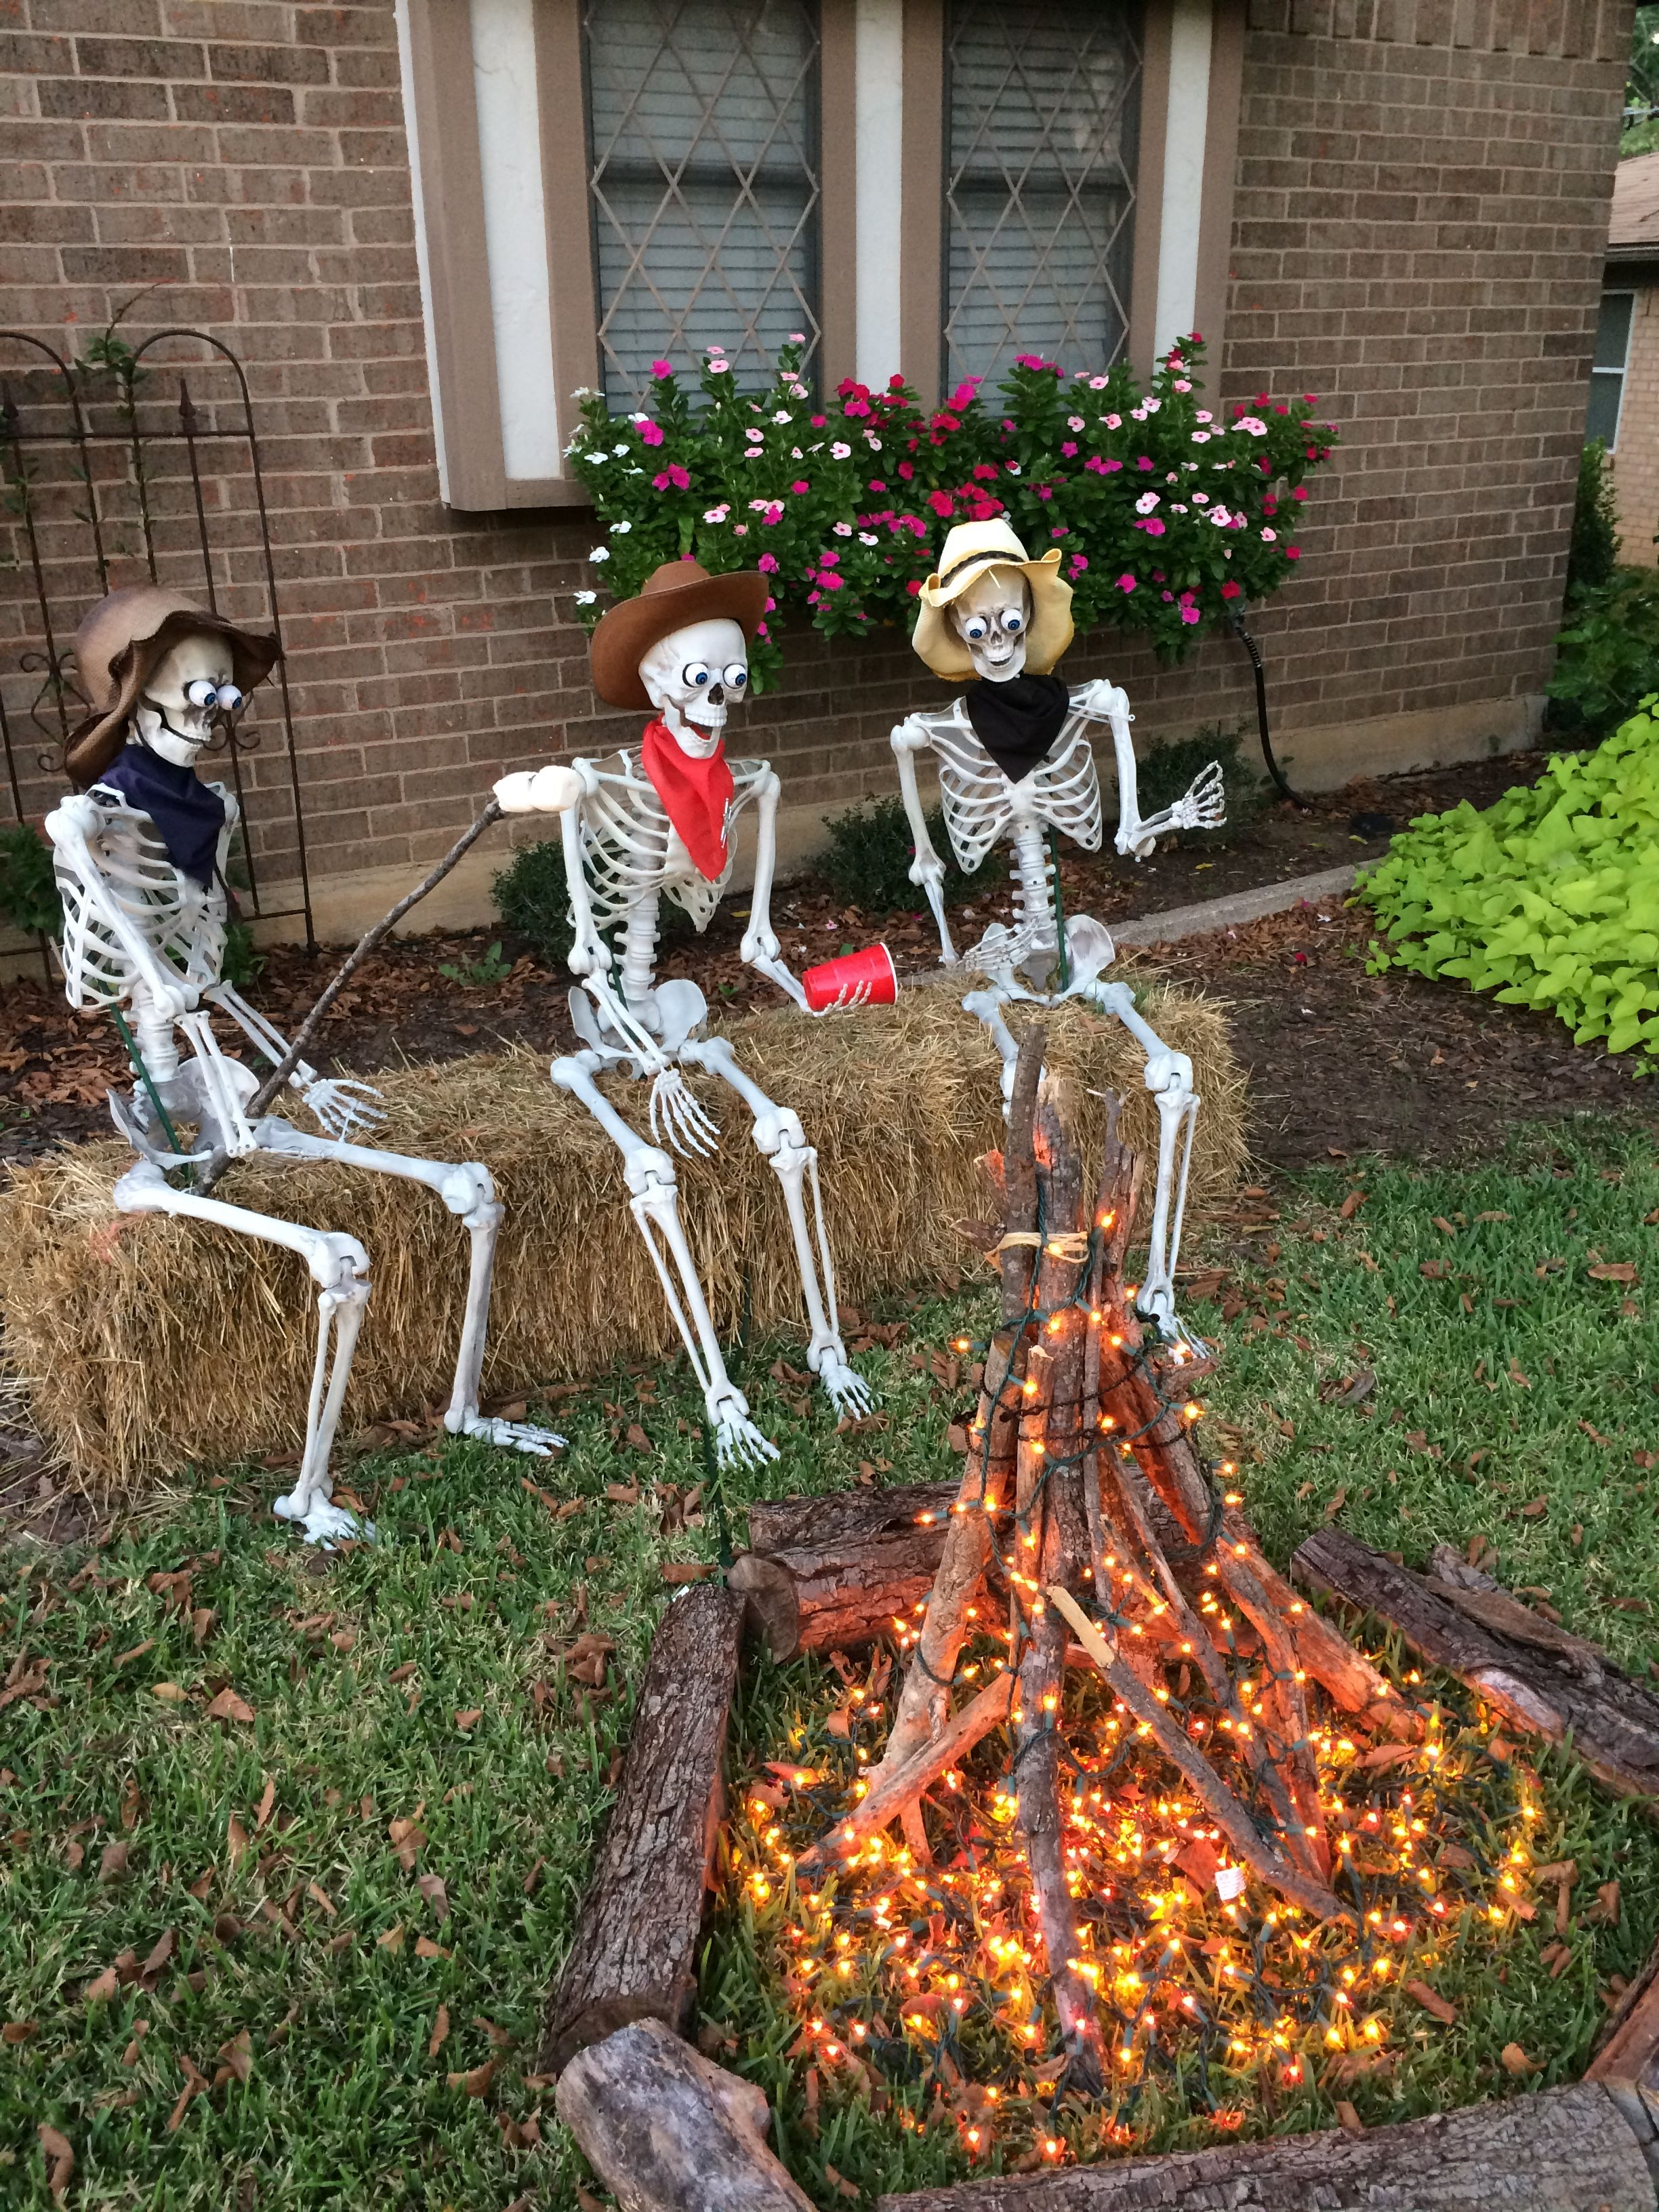 Campfire Cowboys Halloween outdoor decorations, Homemade